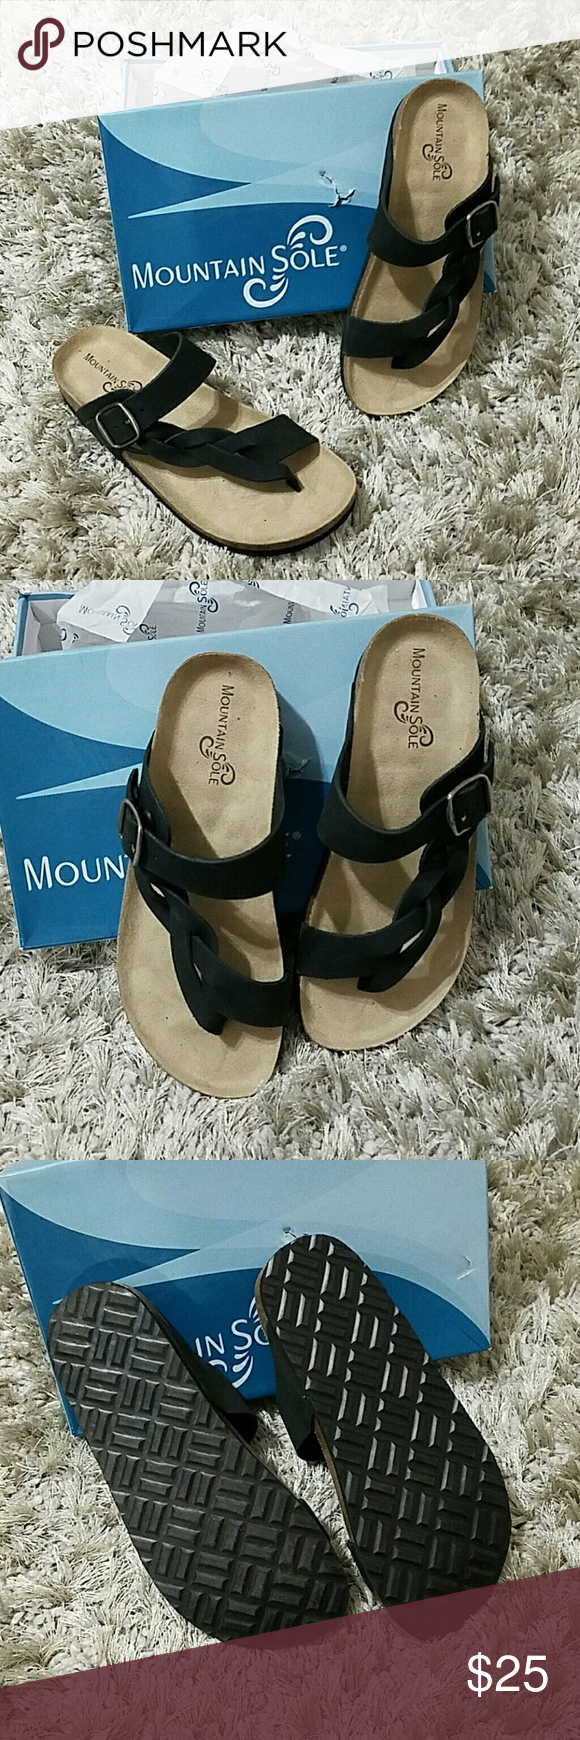 555517a63ff1 Mountain Sole Hollie Braided Sandal Brand new Mountain Sole sandals..  Called the Hollie.. Black nubuck leather.. Size 8 TTS.. 2 sizes available.